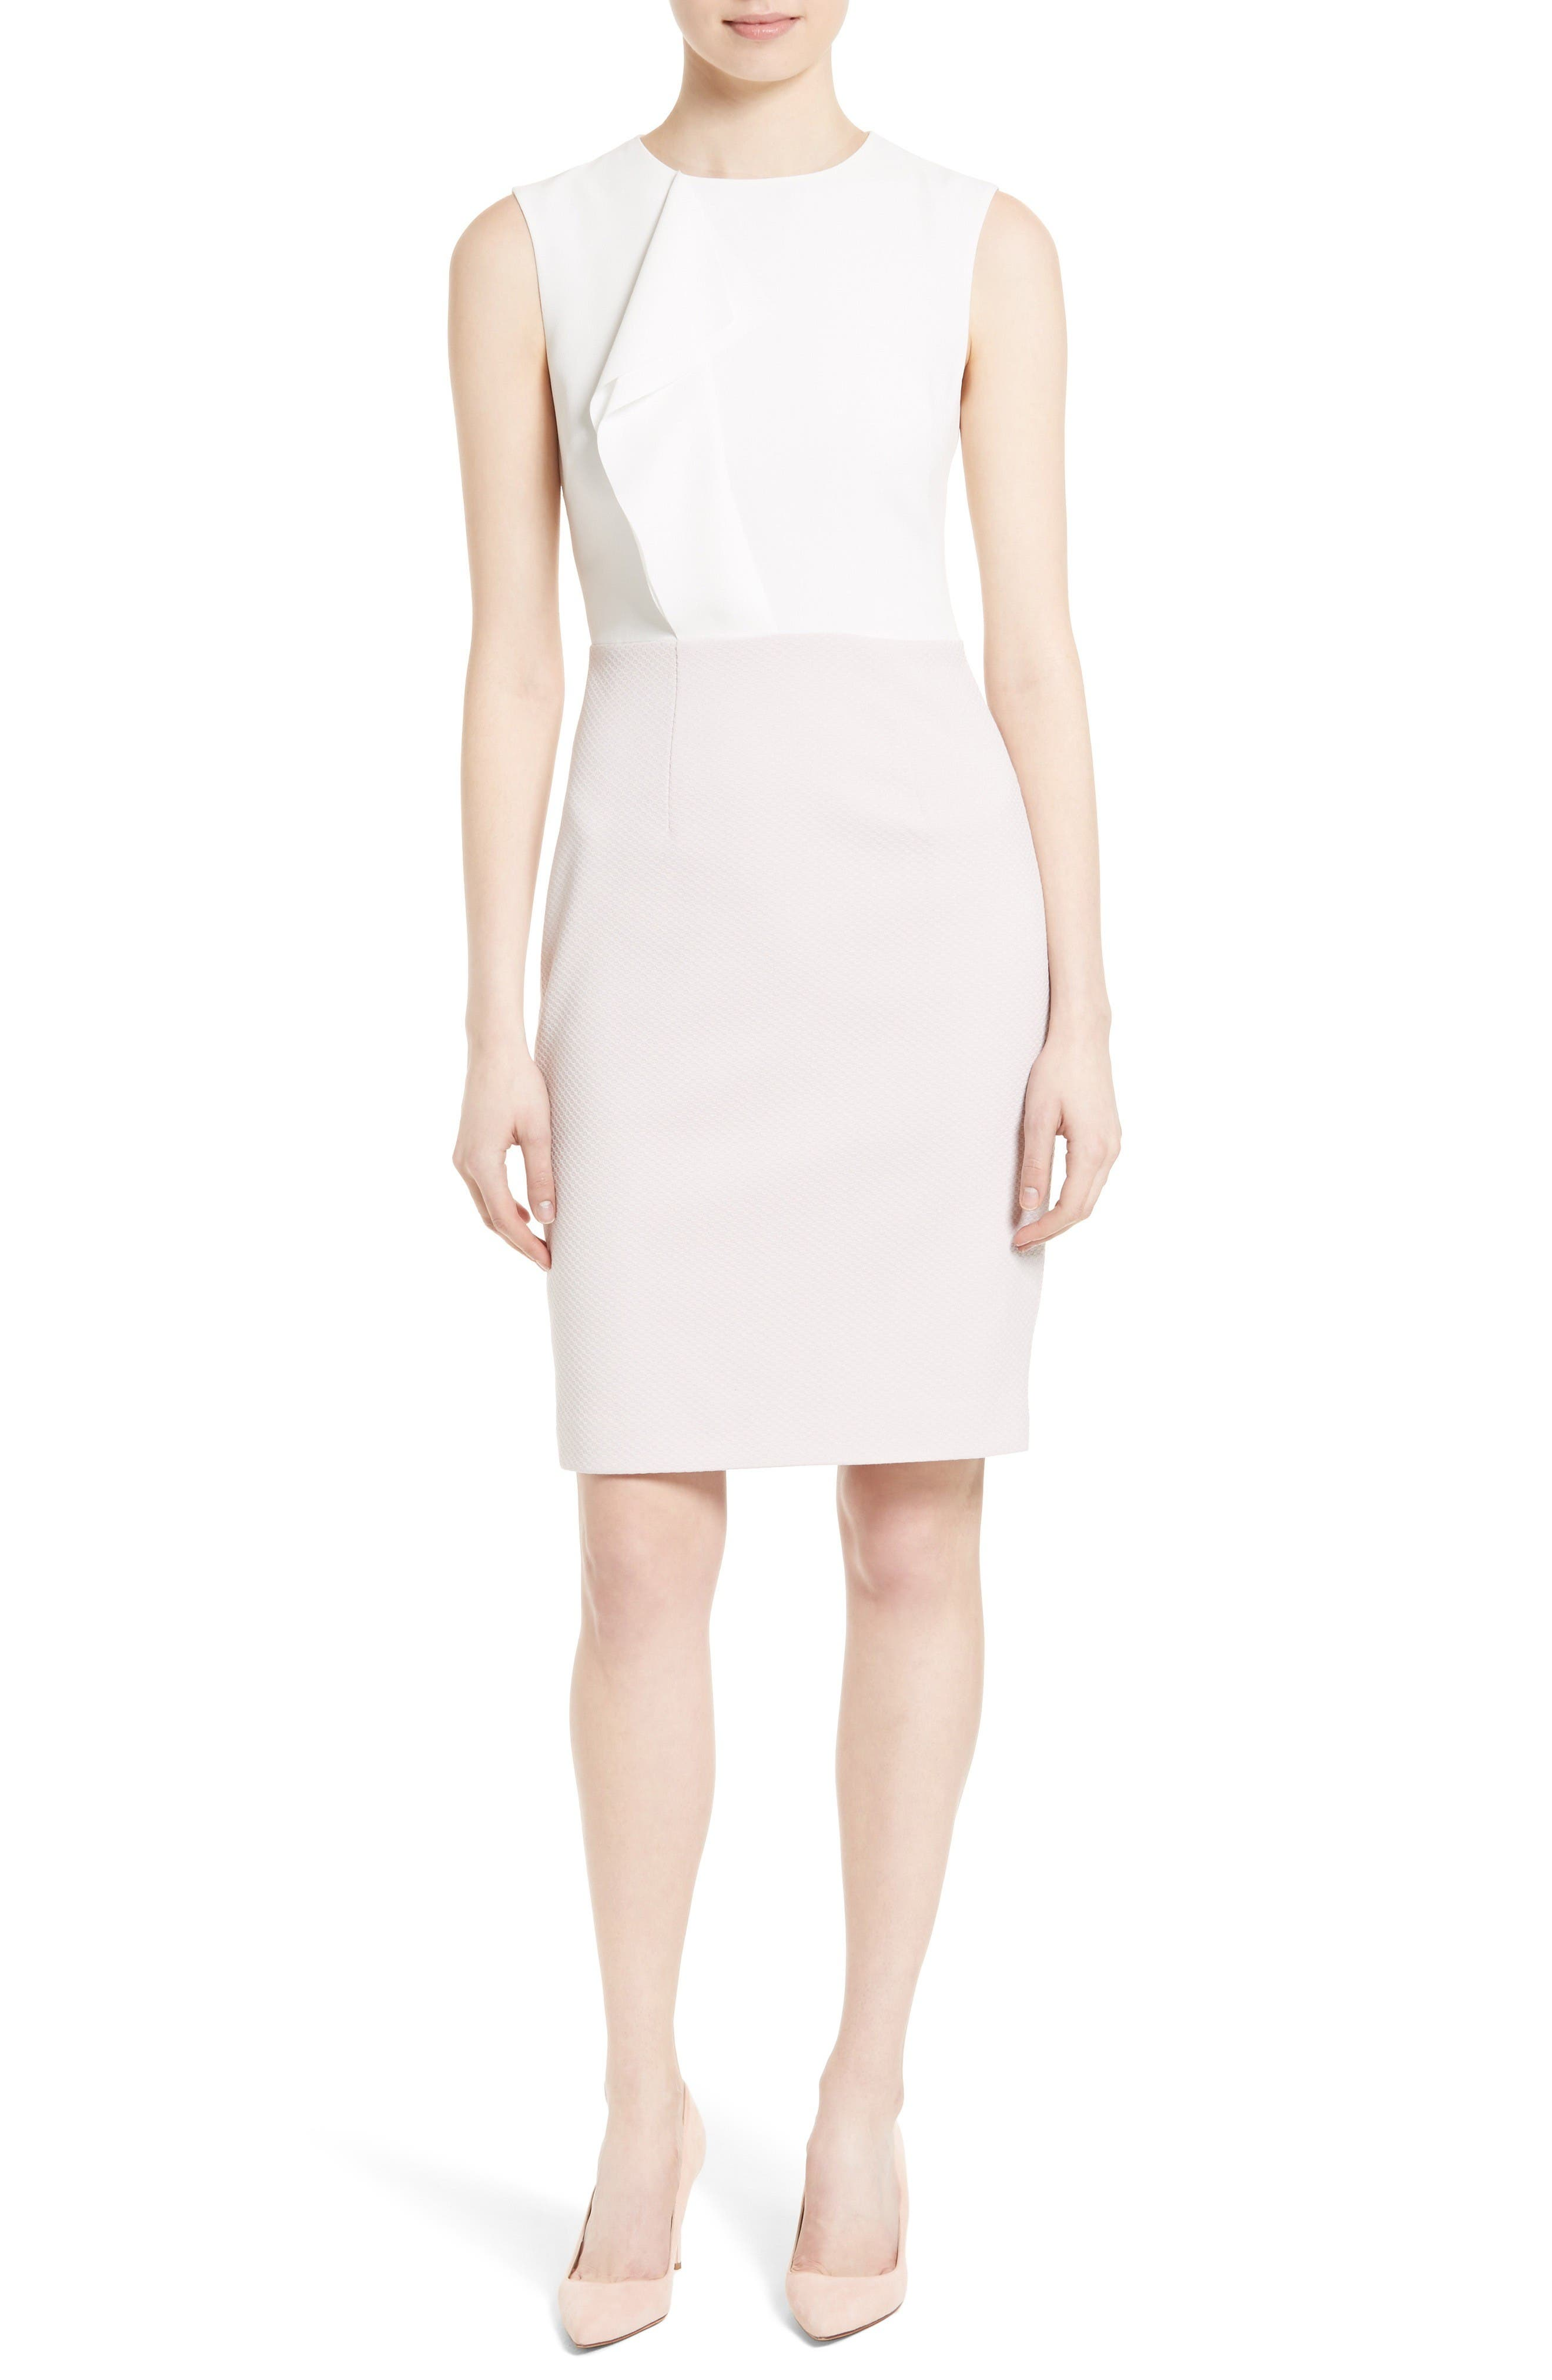 Dress for Women, Evening Cocktail Party On Sale, Baby Rose, Viscose, 2017, 10 12 14 Twin-Set